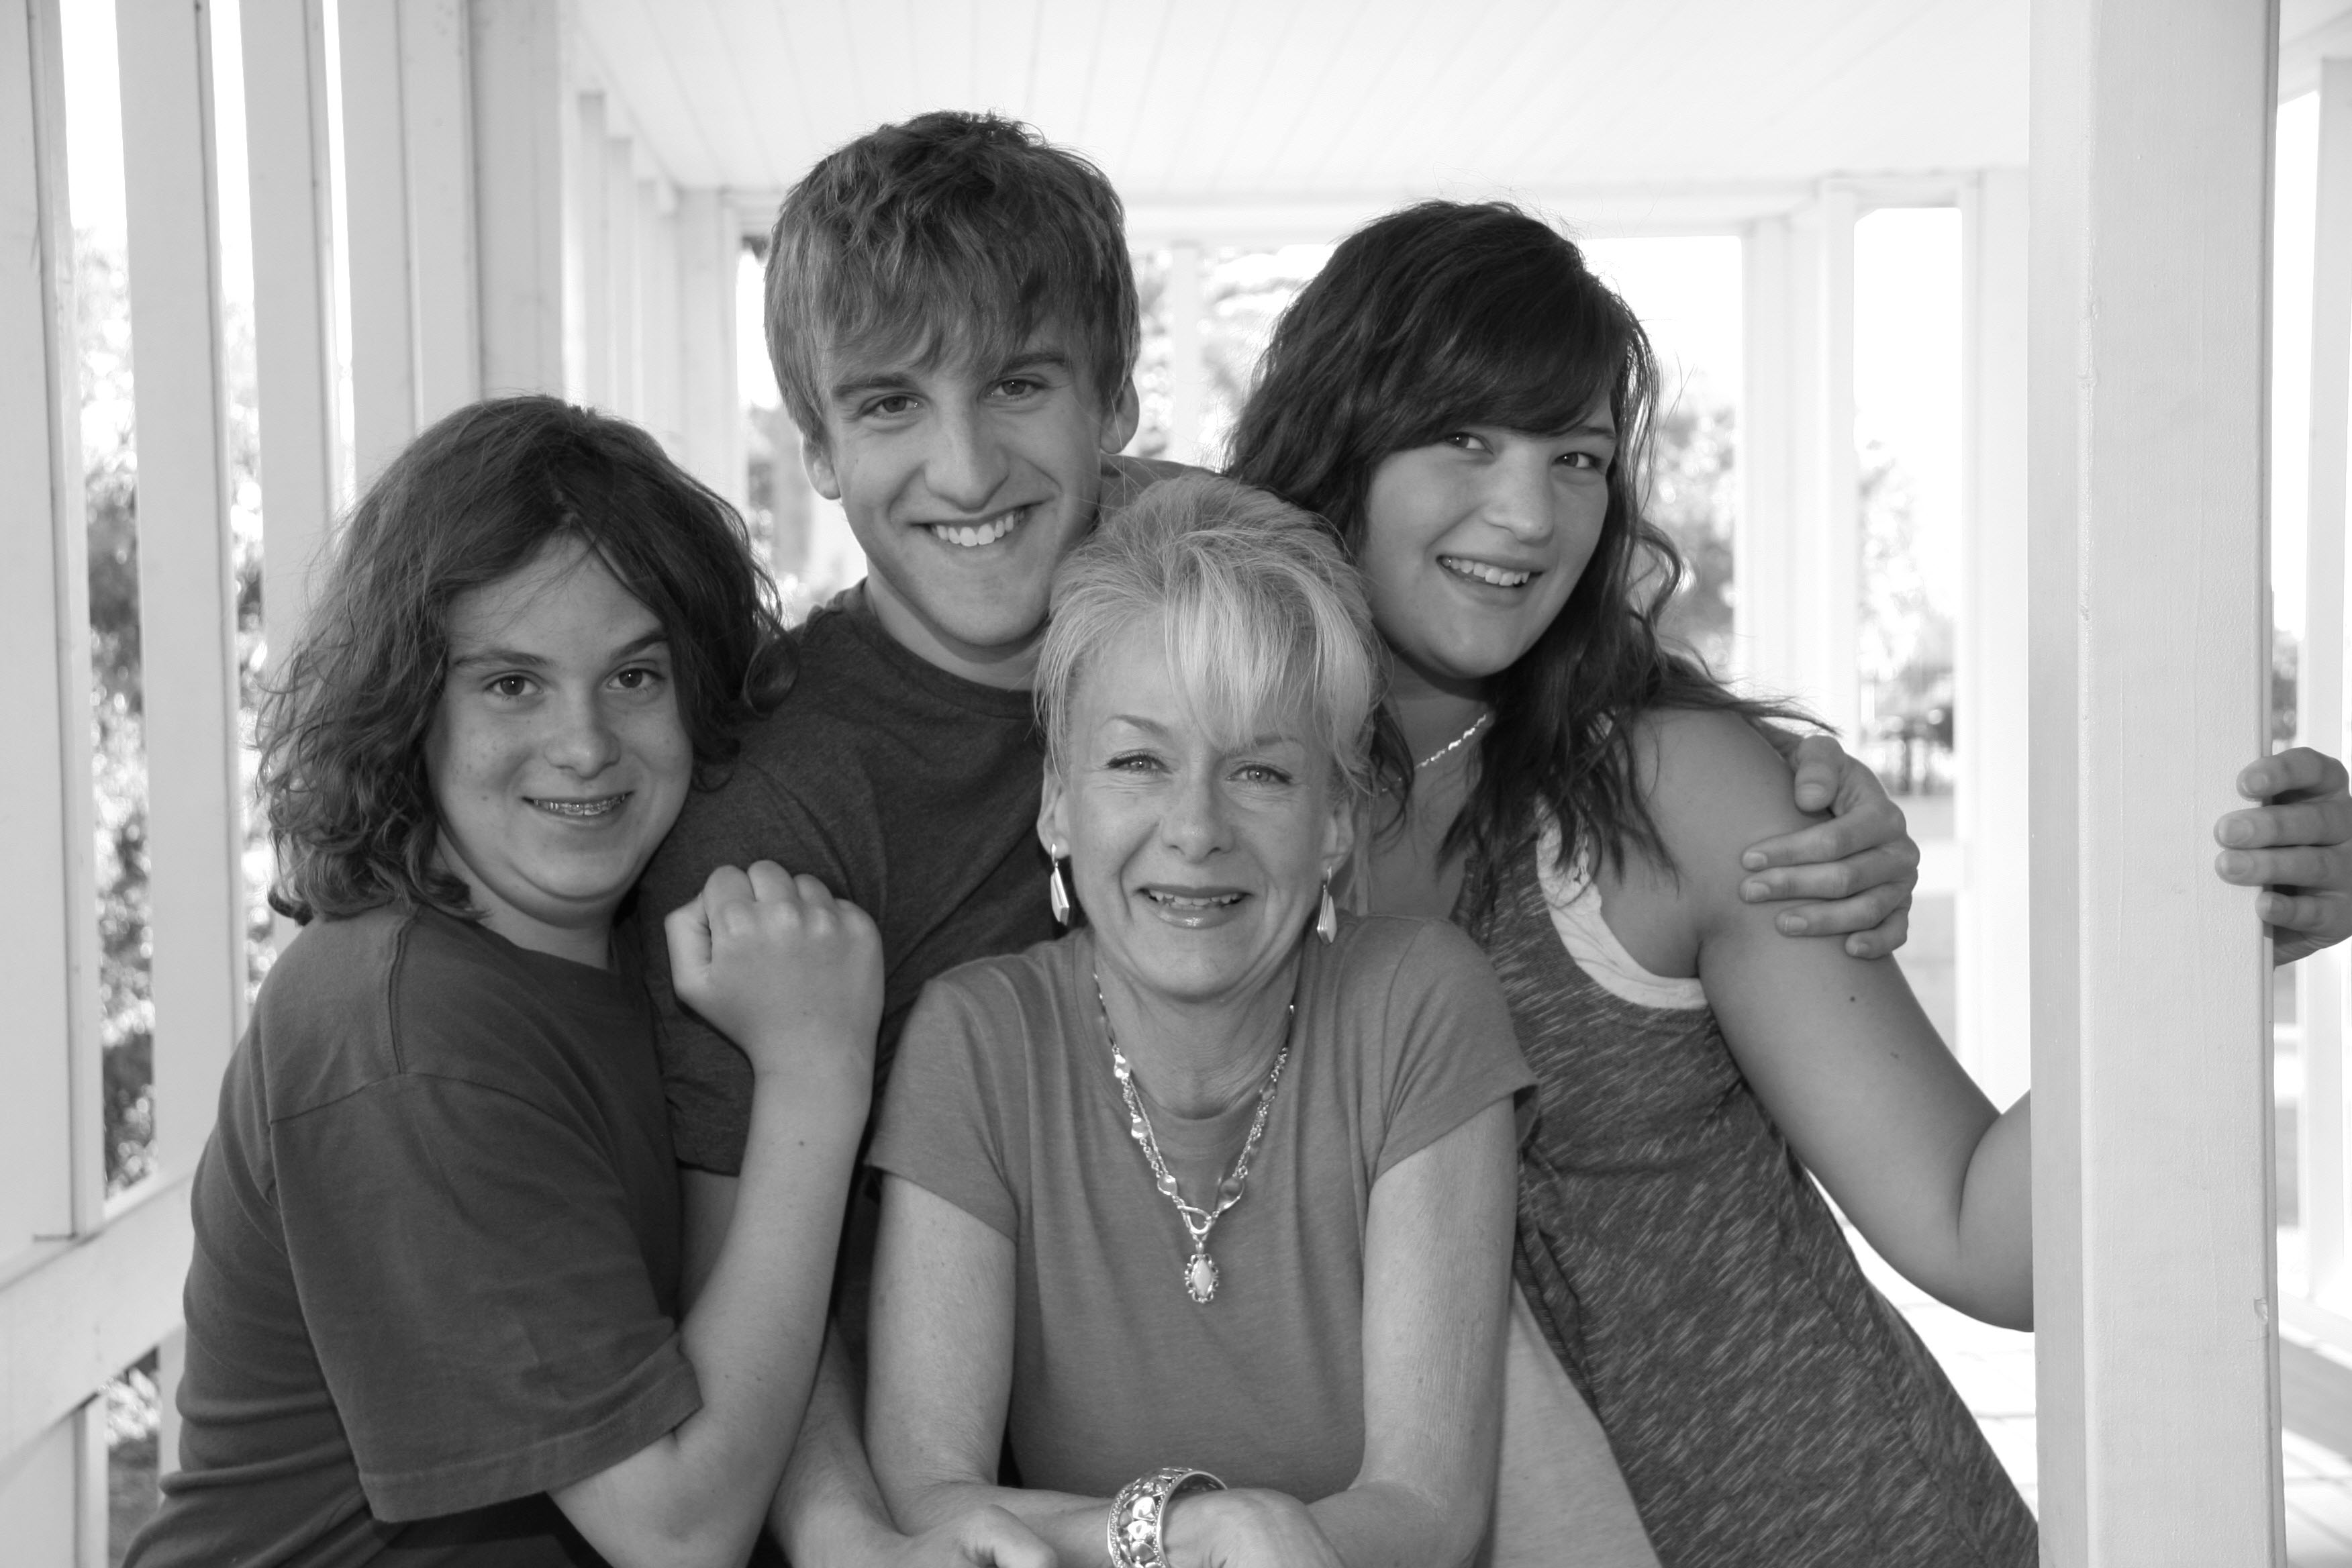 Left to right. Lil bro, Me, Mom, and my beautiful girl